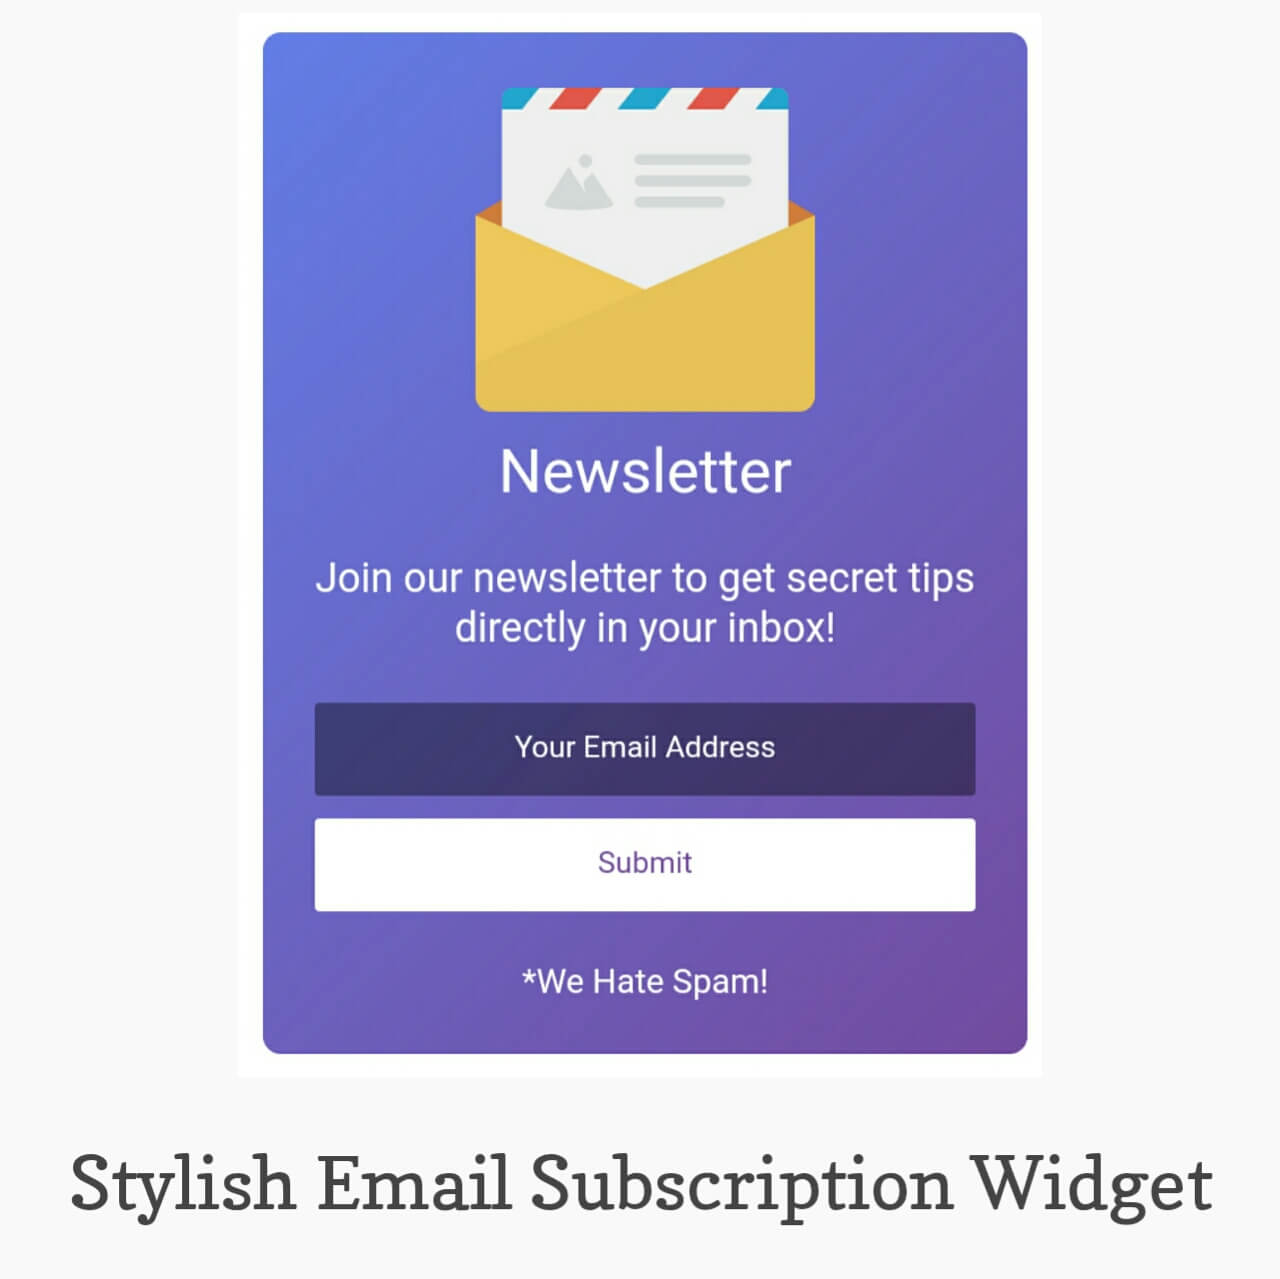 stylish-email-subscription-widget-for-blogger